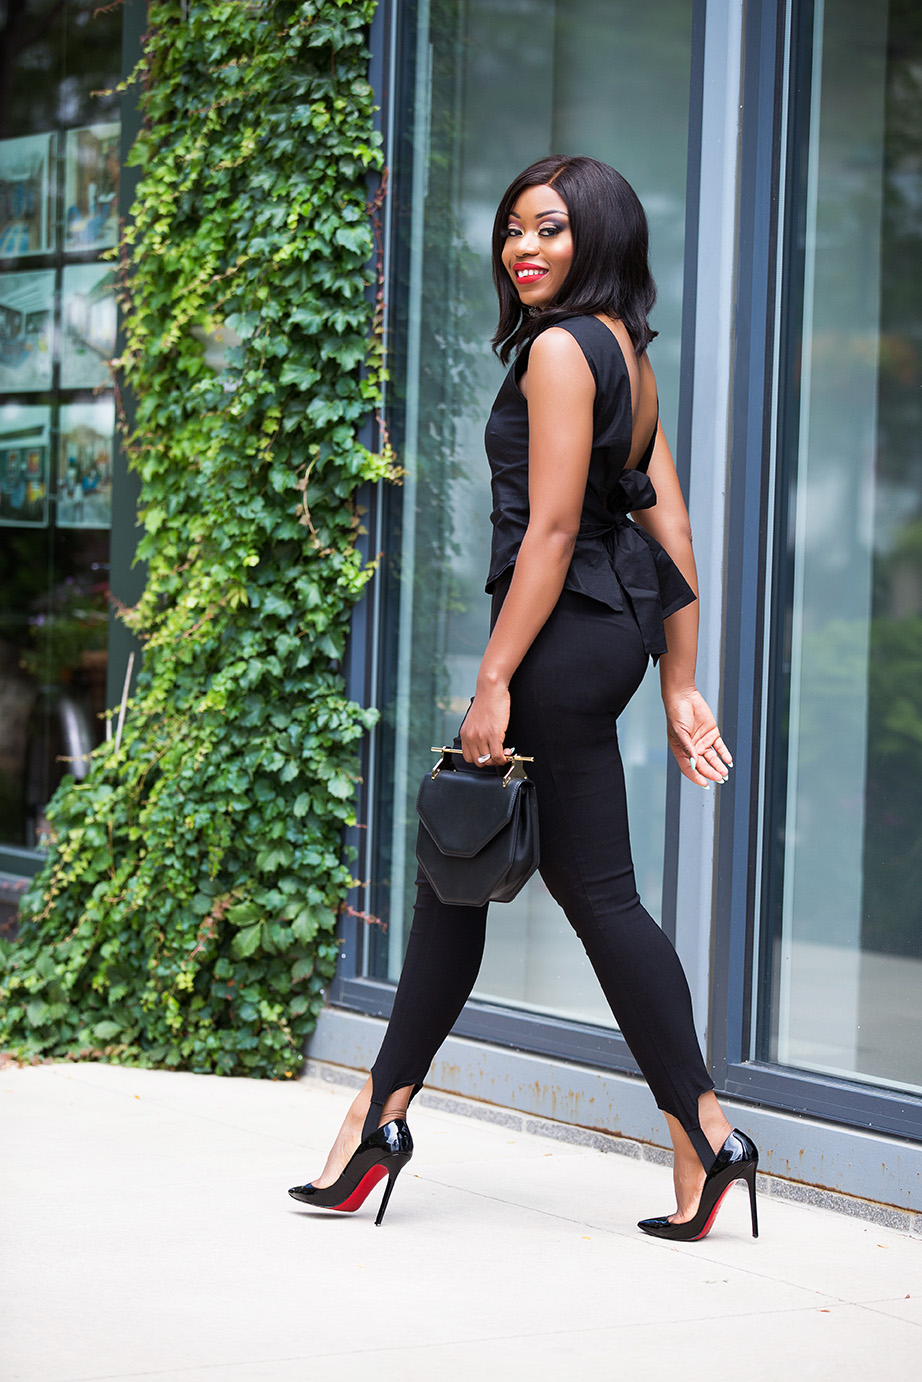 Stella-adewunmi-of-jadore-fashion-in-tailored-stirrup-pants